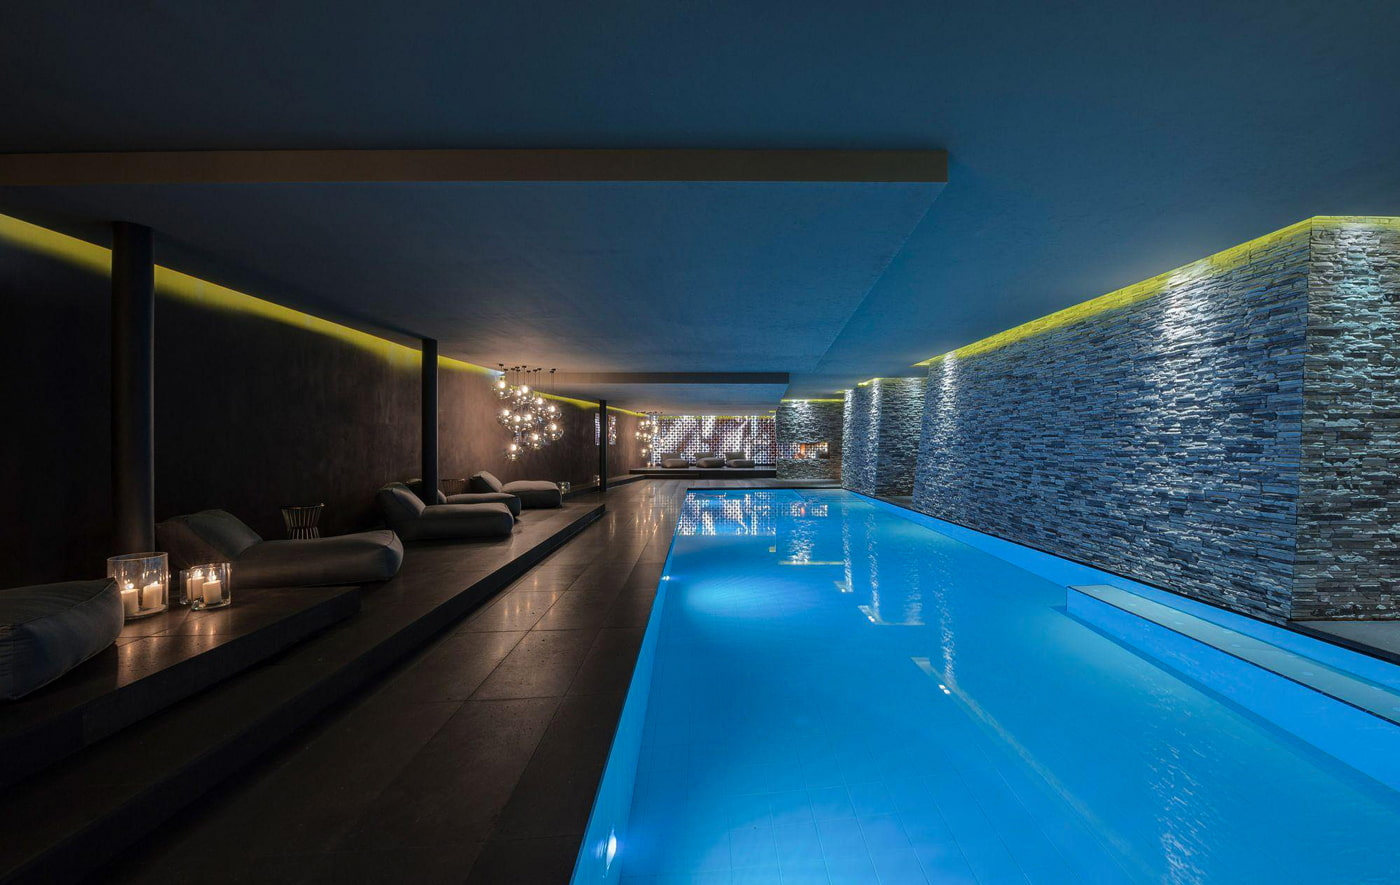 Hotel with indoor heated pool in Ischgl